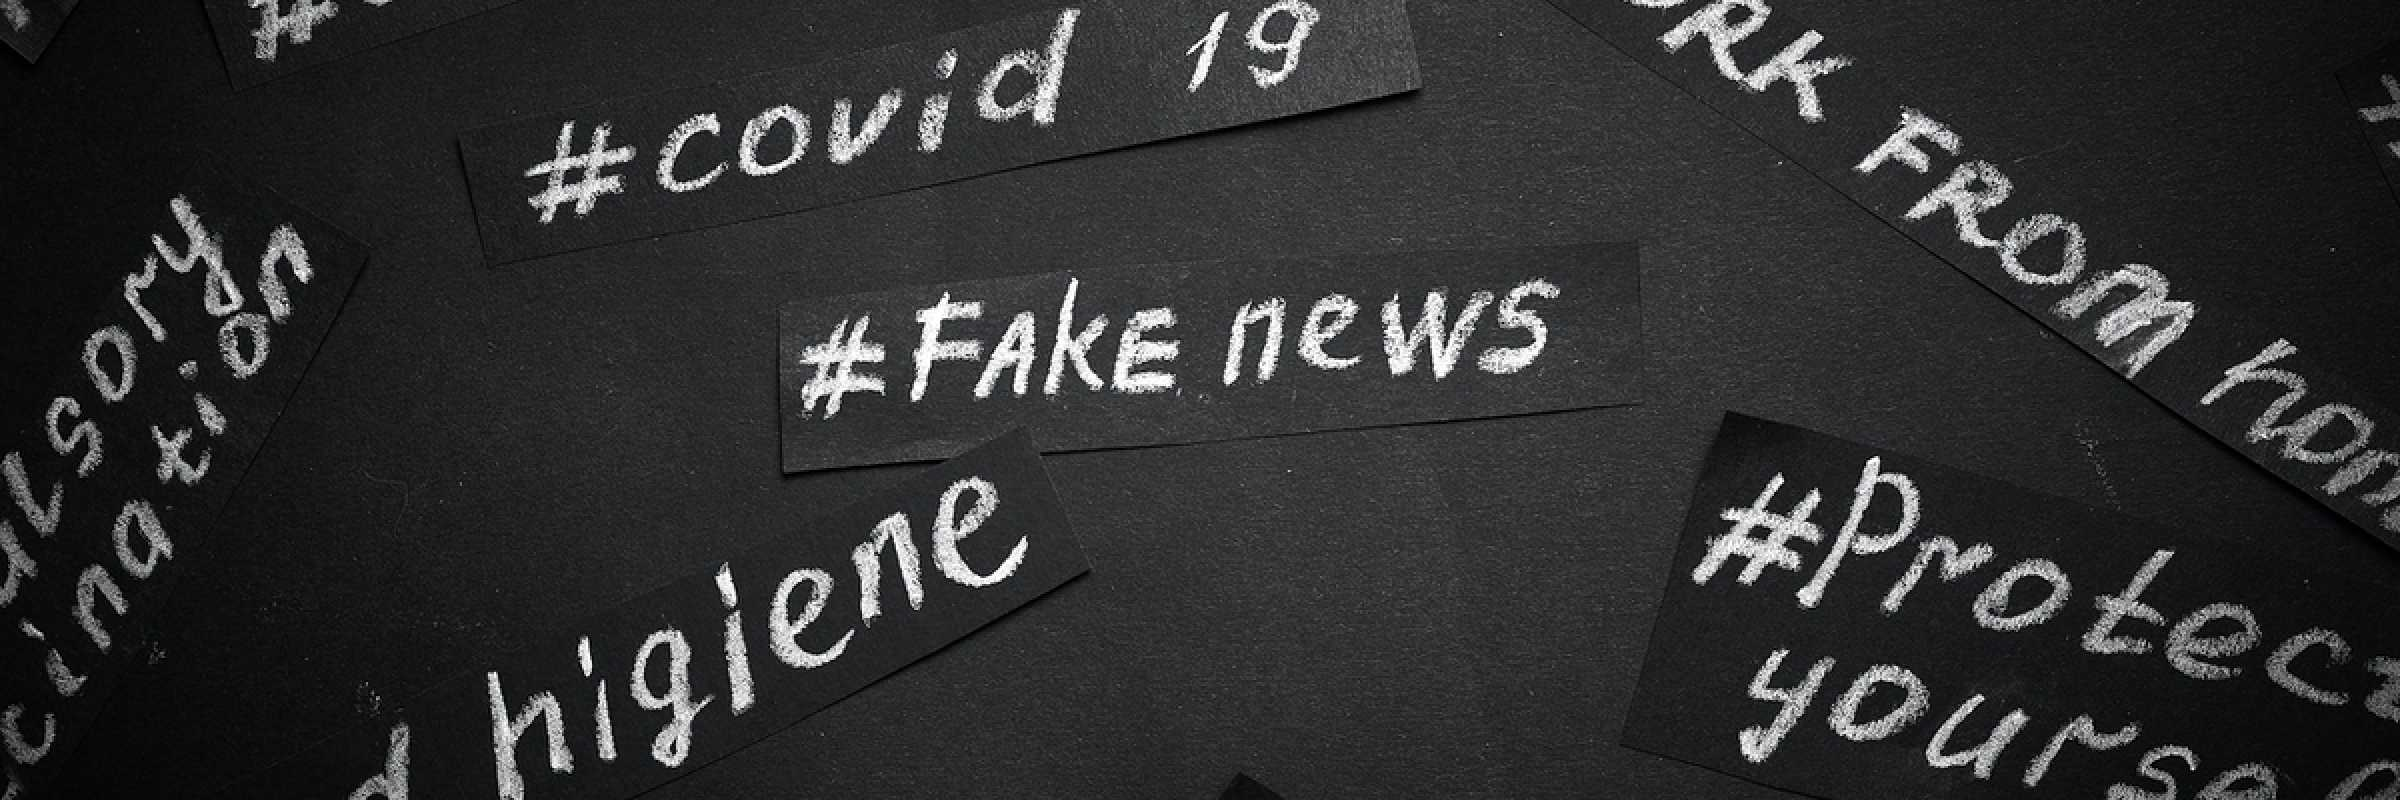 ShipInsight sets a standard for 'fake news'